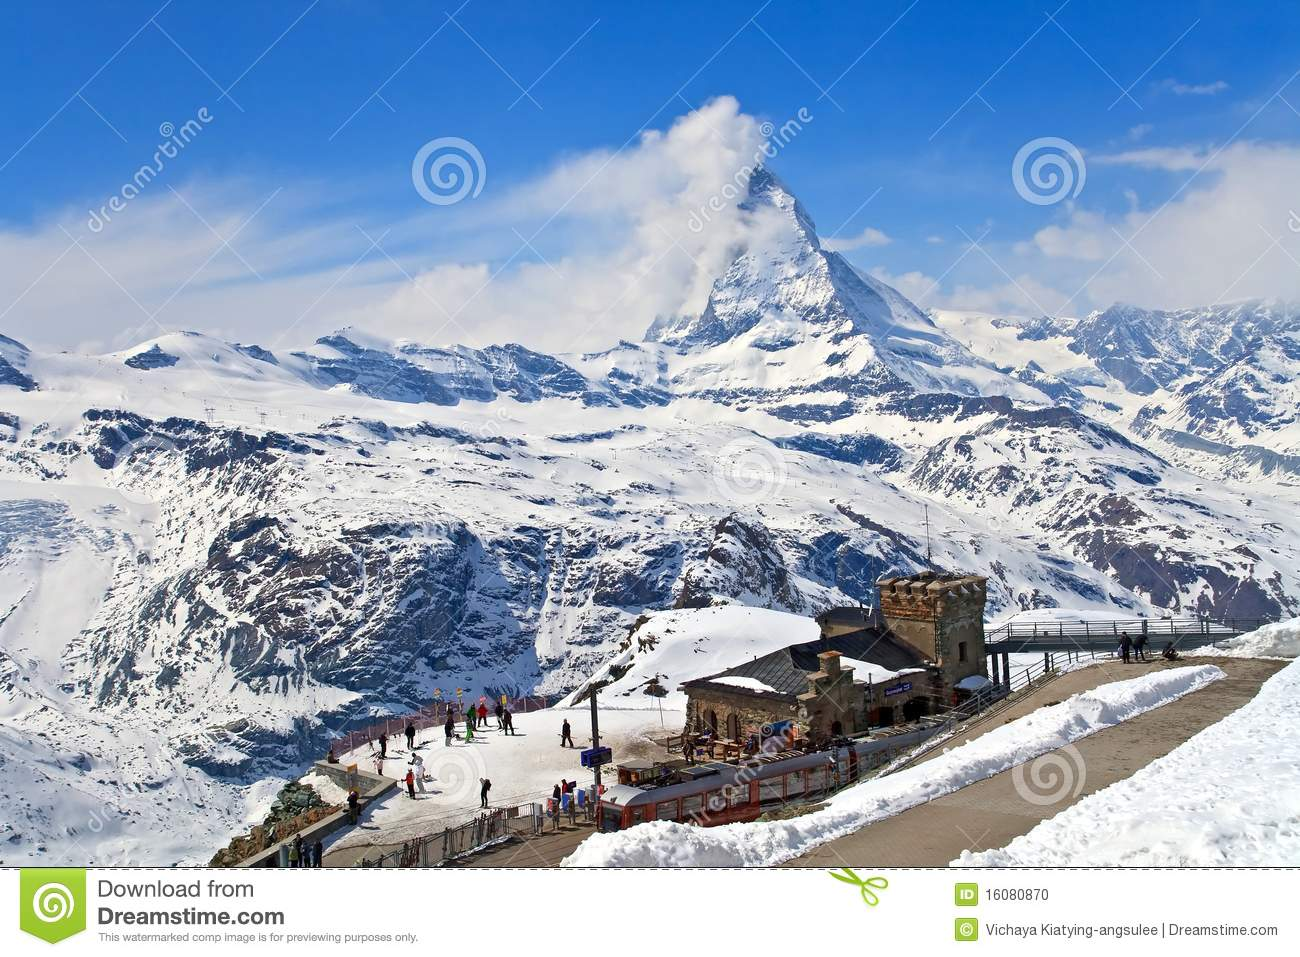 Matterhorn Peak From Gornergrat Mountain, Switzerland Stock Photo.